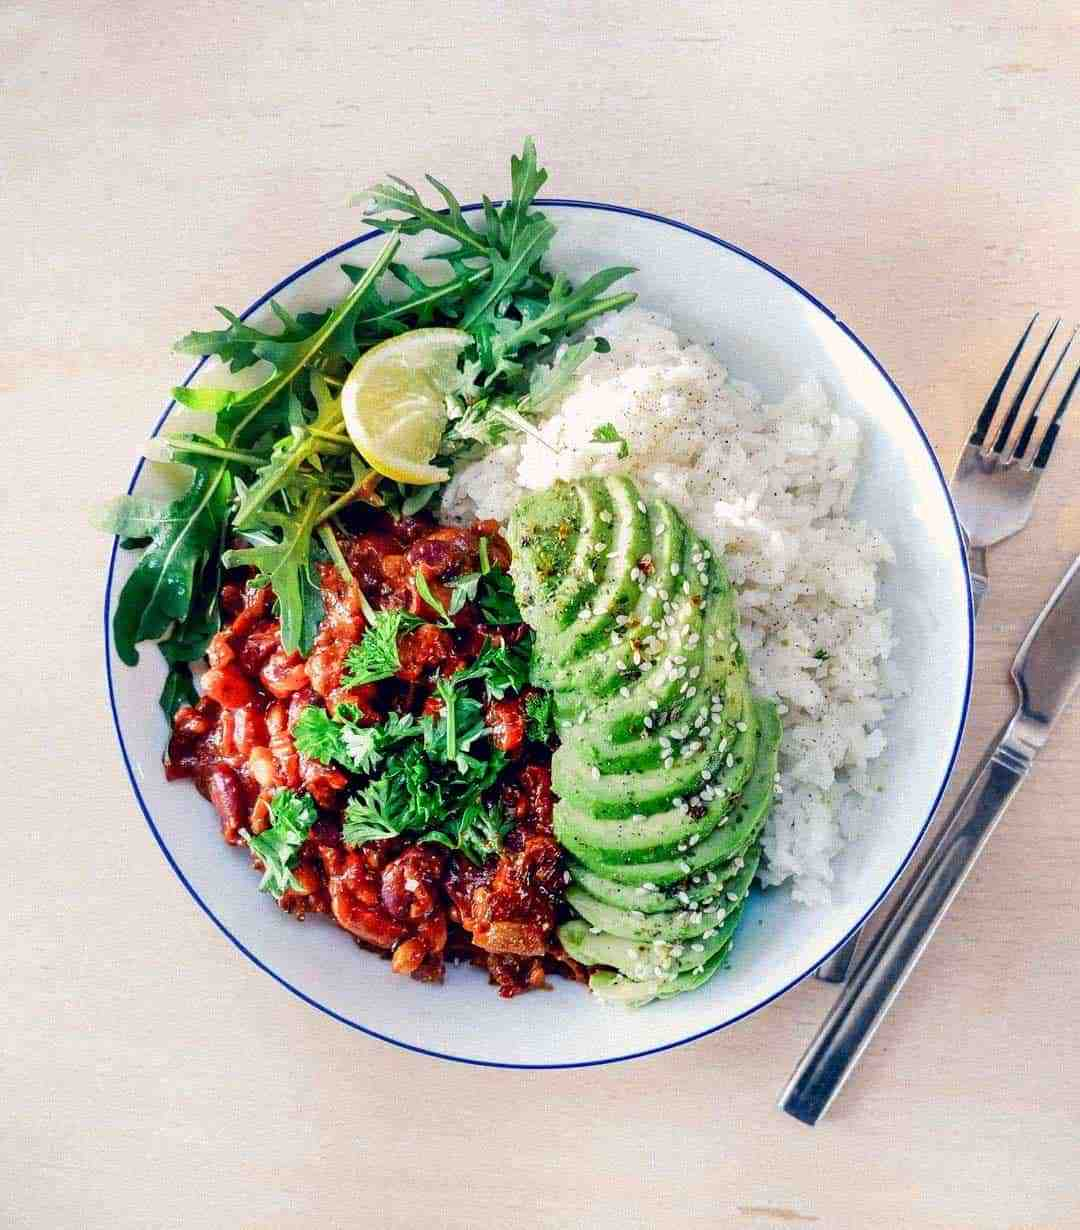 Spicy vegan dahl with kidney beans and lentils